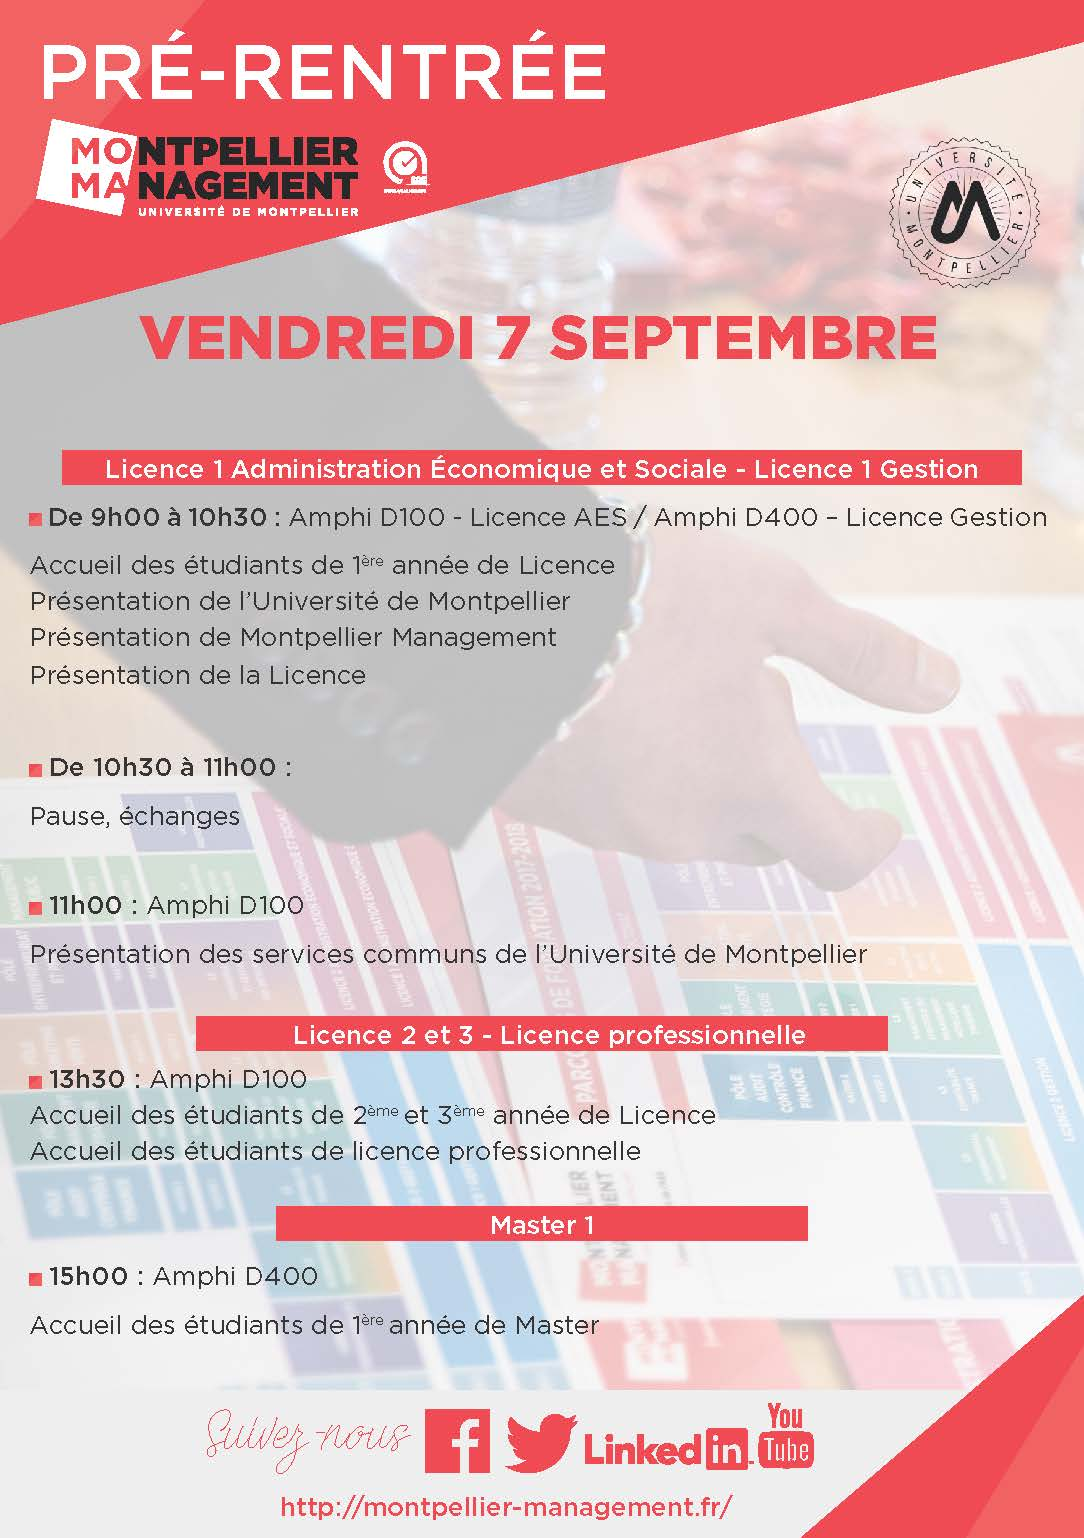 Programme pre-rentree_Montpellier-Management_2018